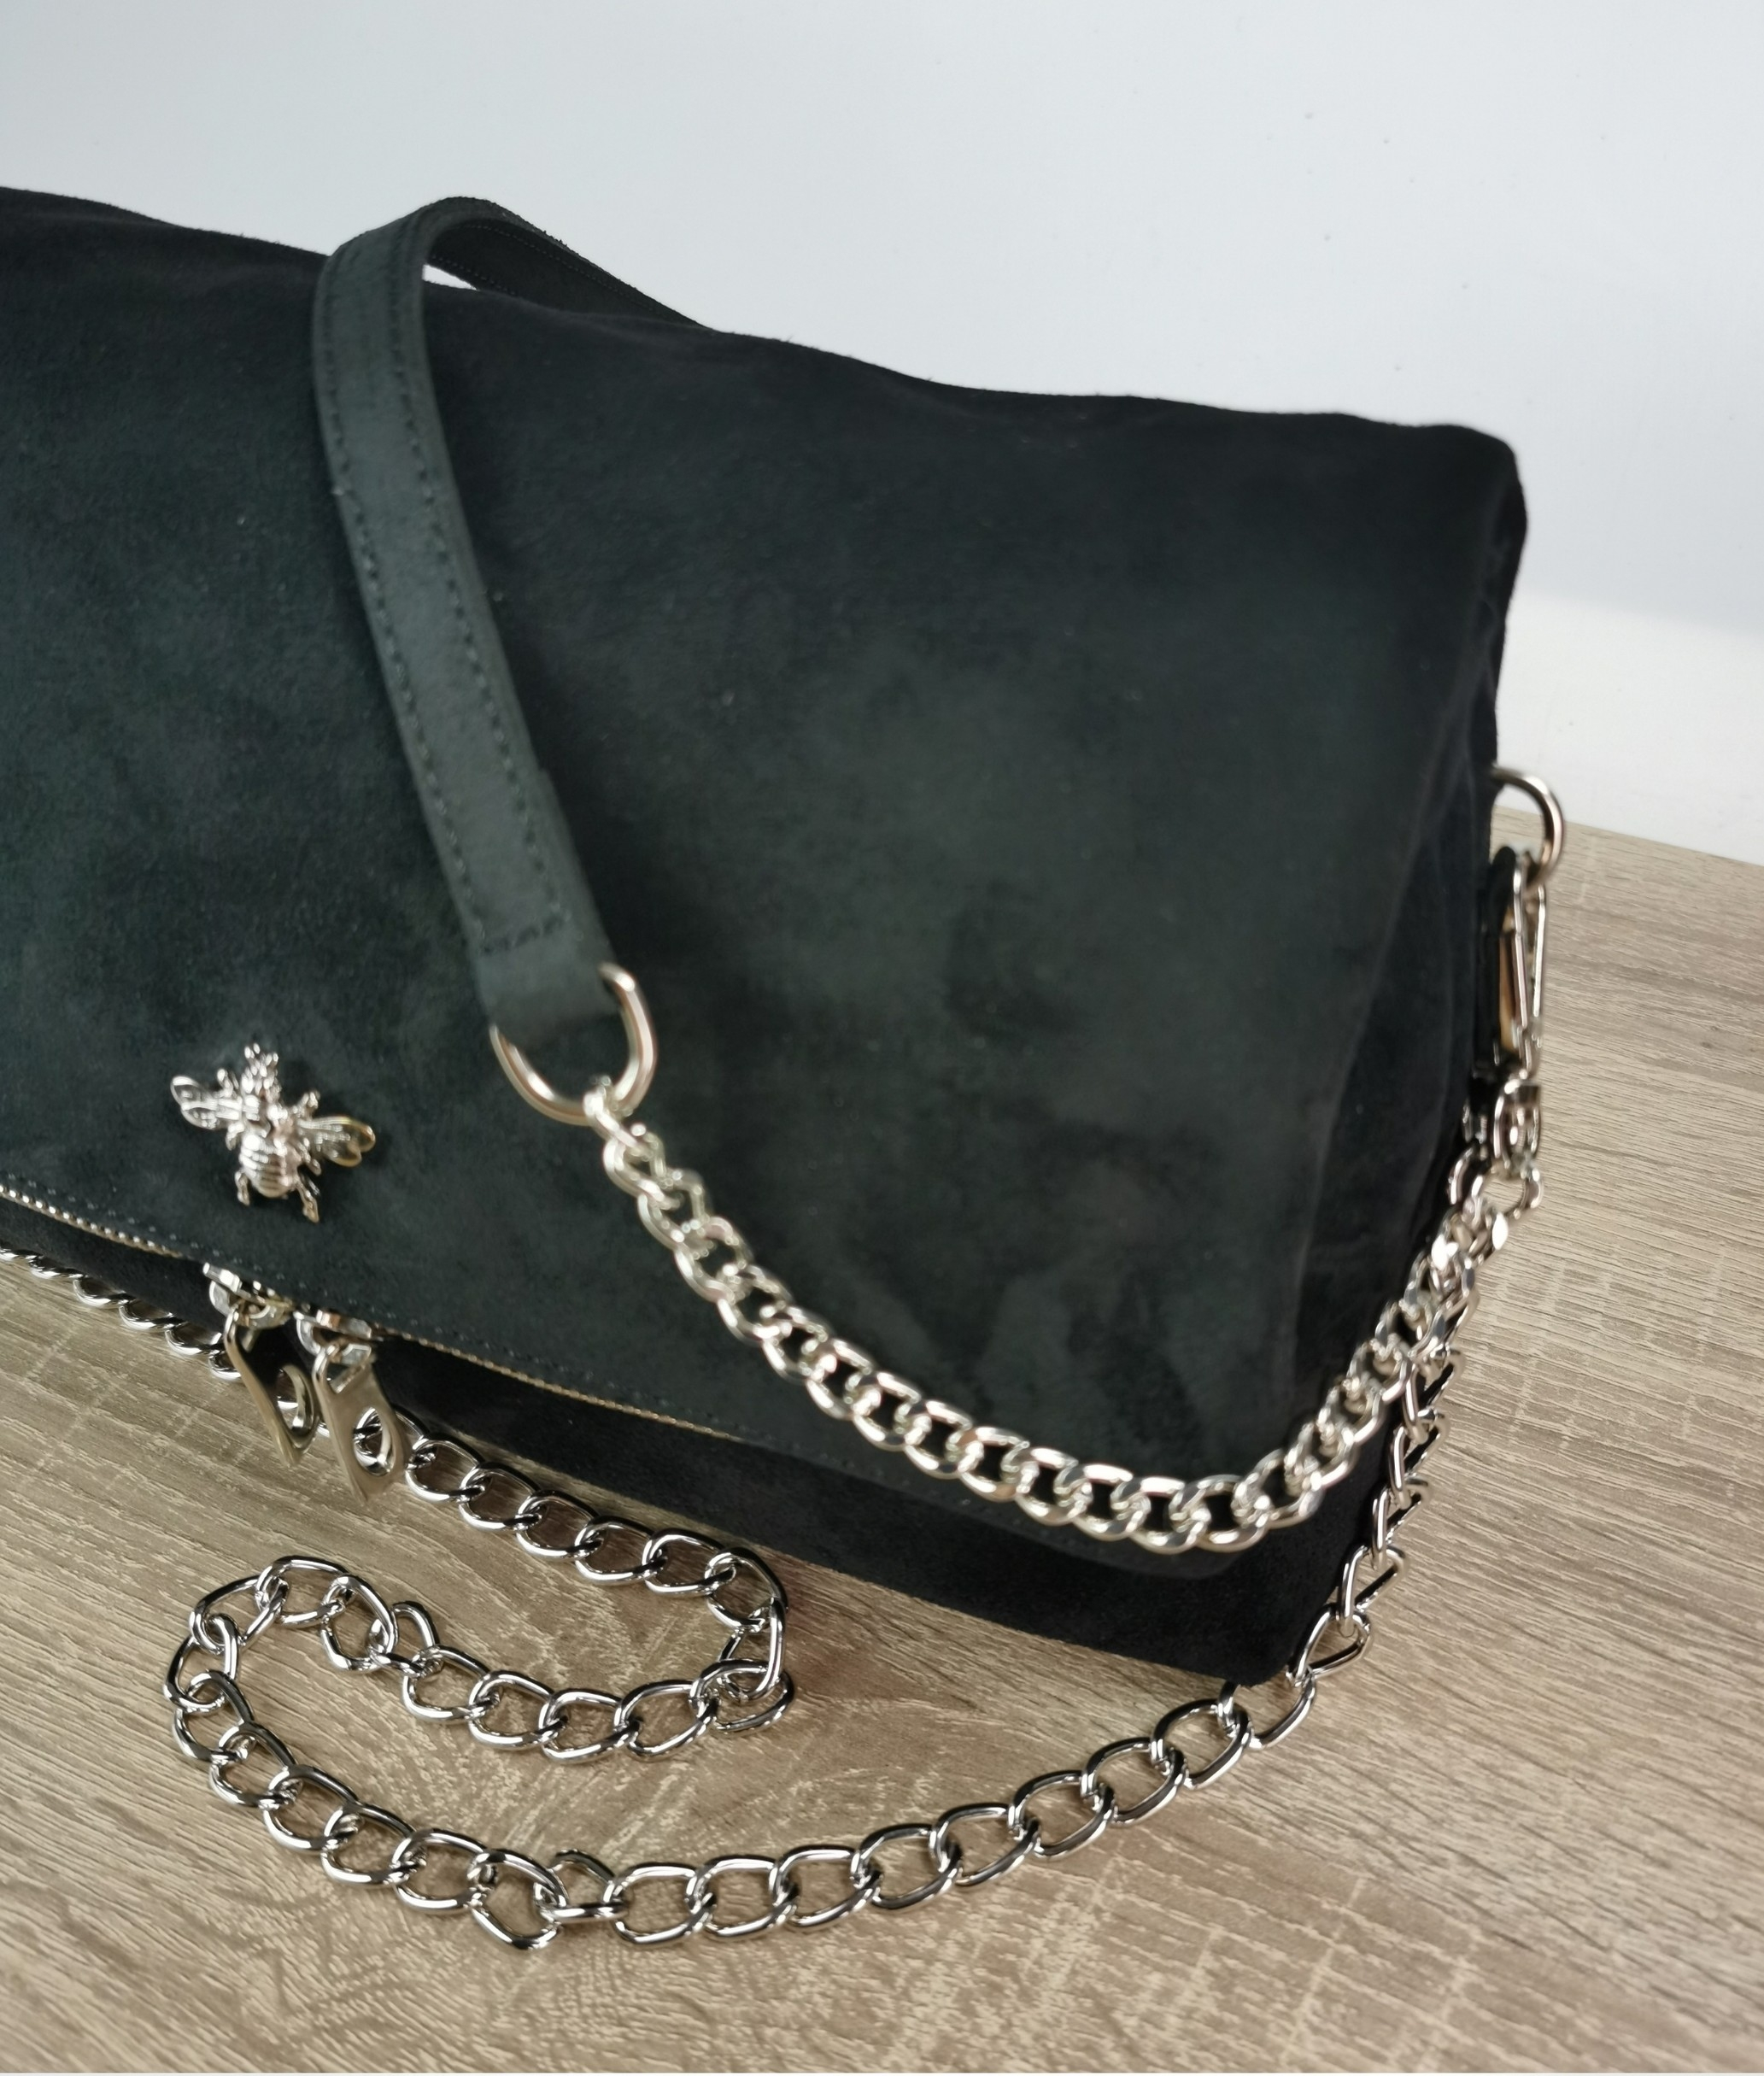 Zodiak Leather Bag - Limited Edition